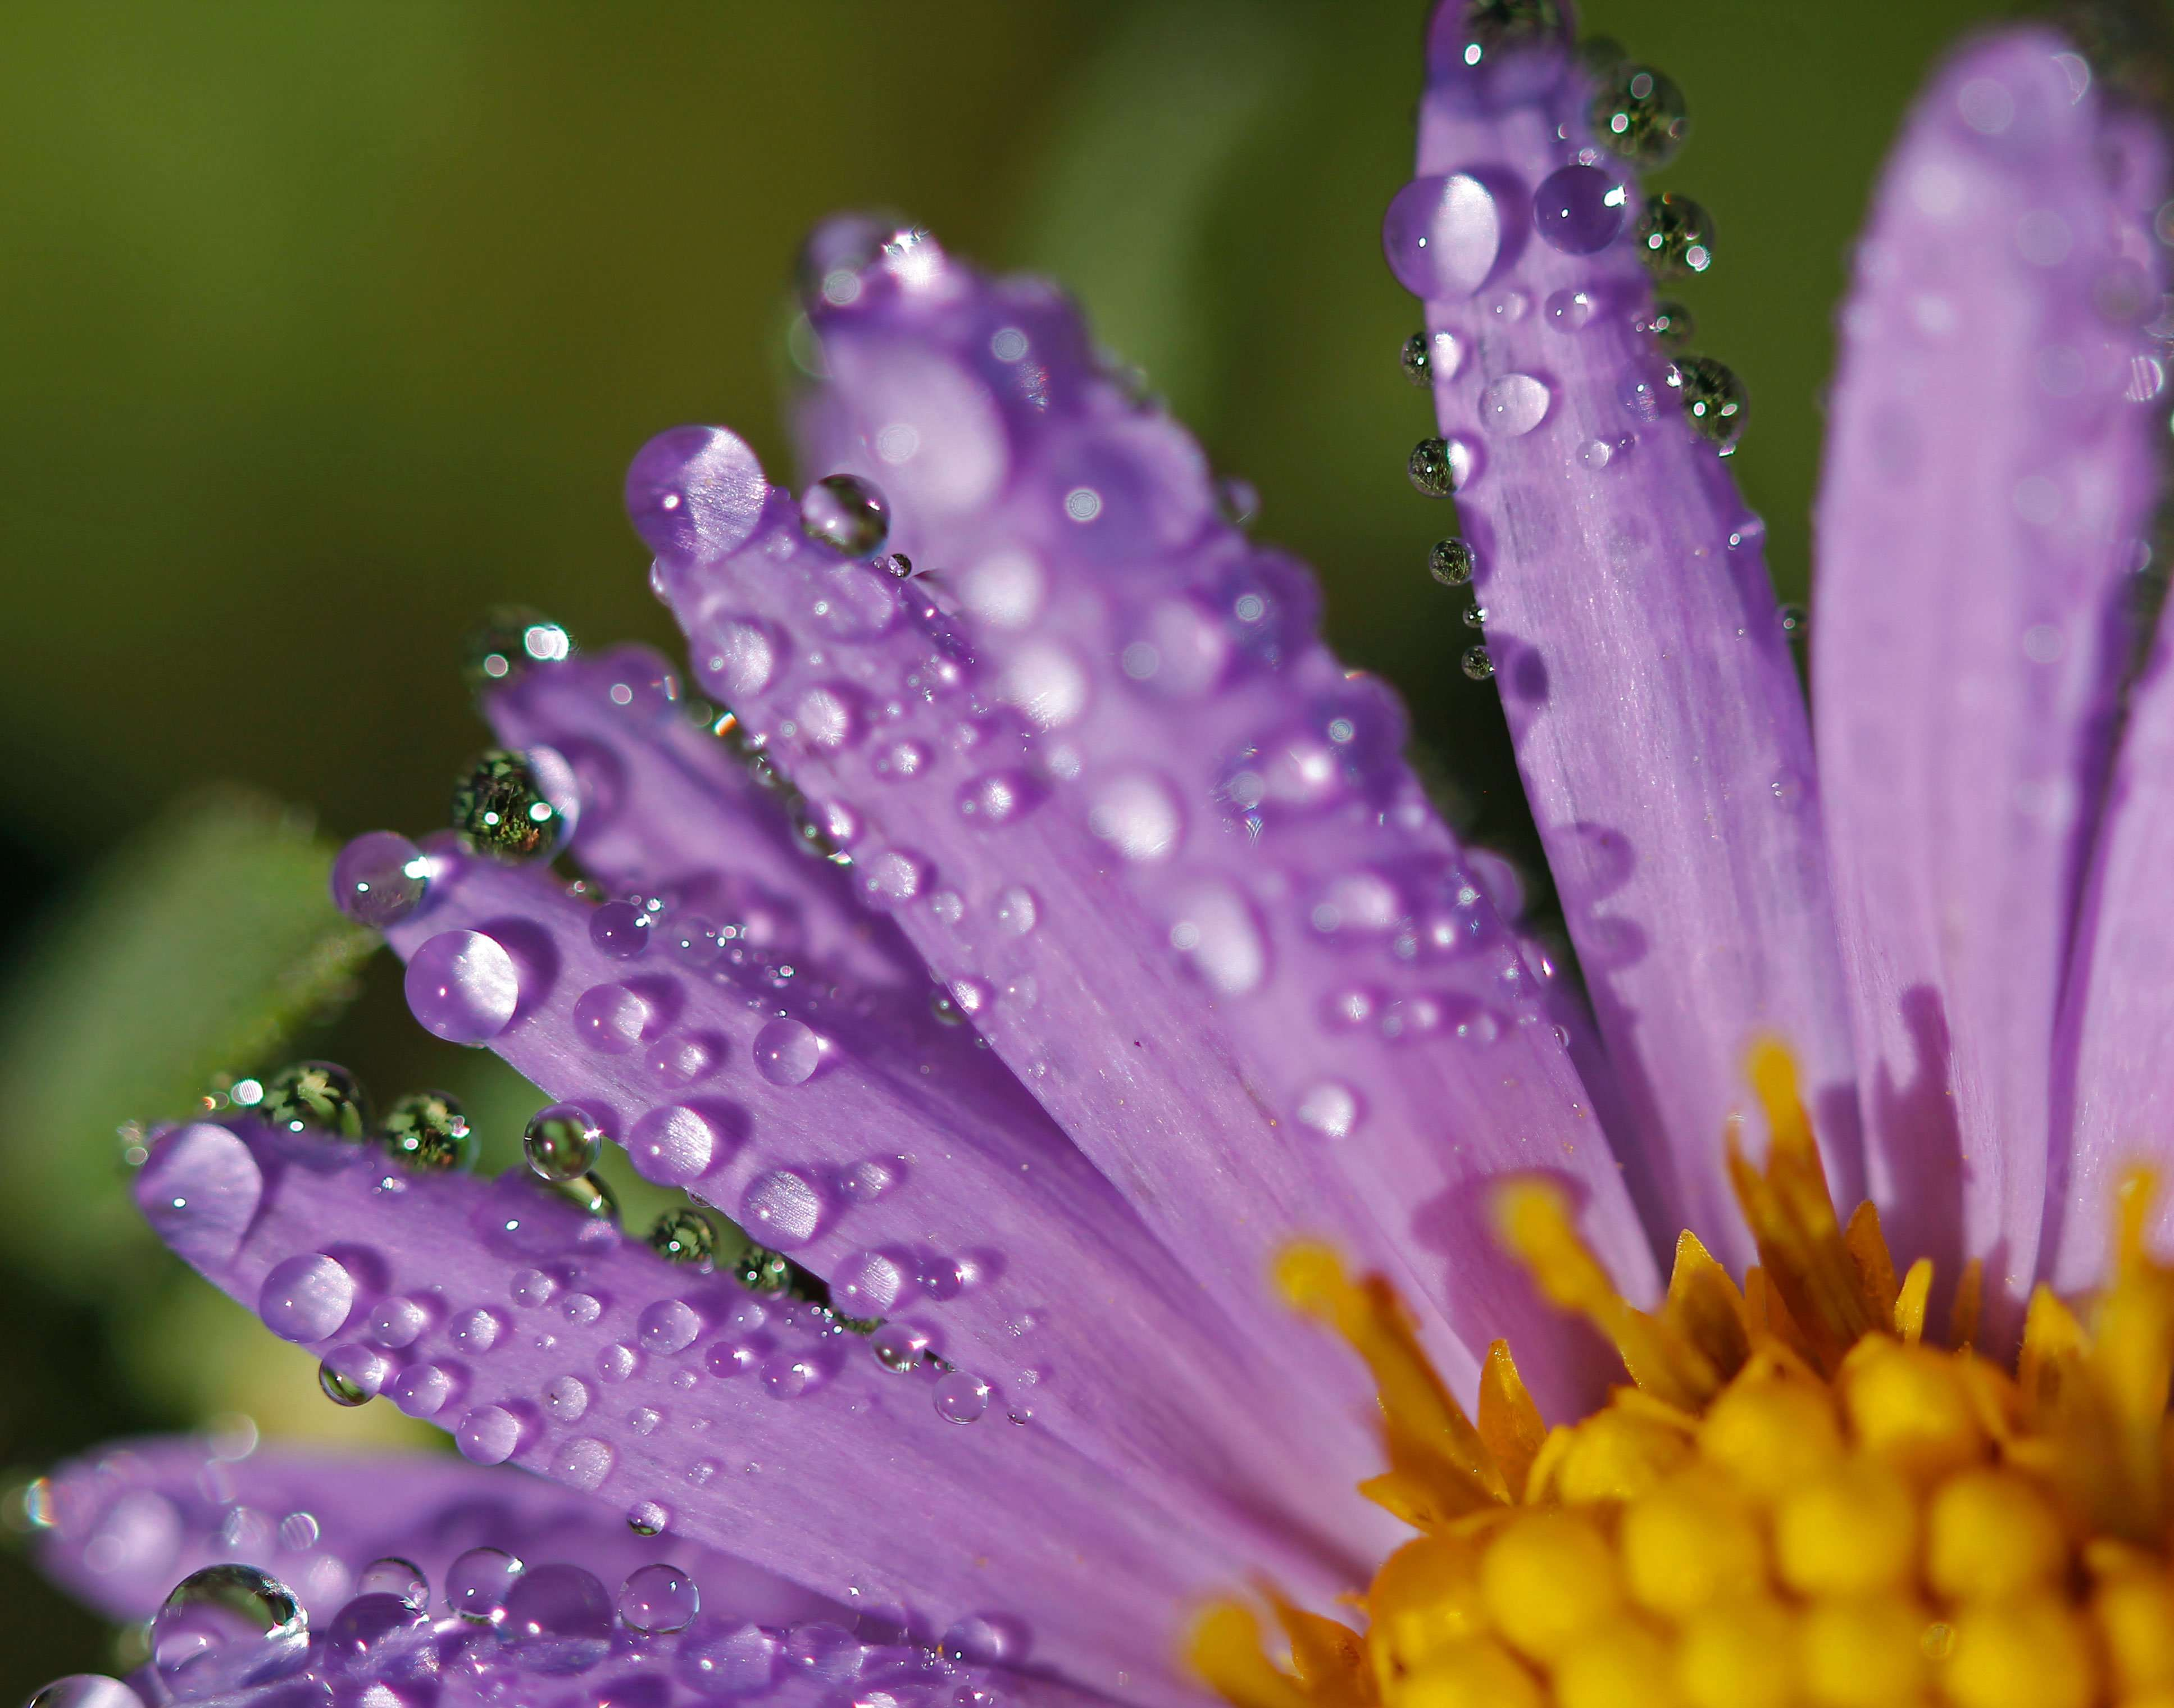 Wild Asters are beautiful native flowering forbs throughout Missouri's natural areas